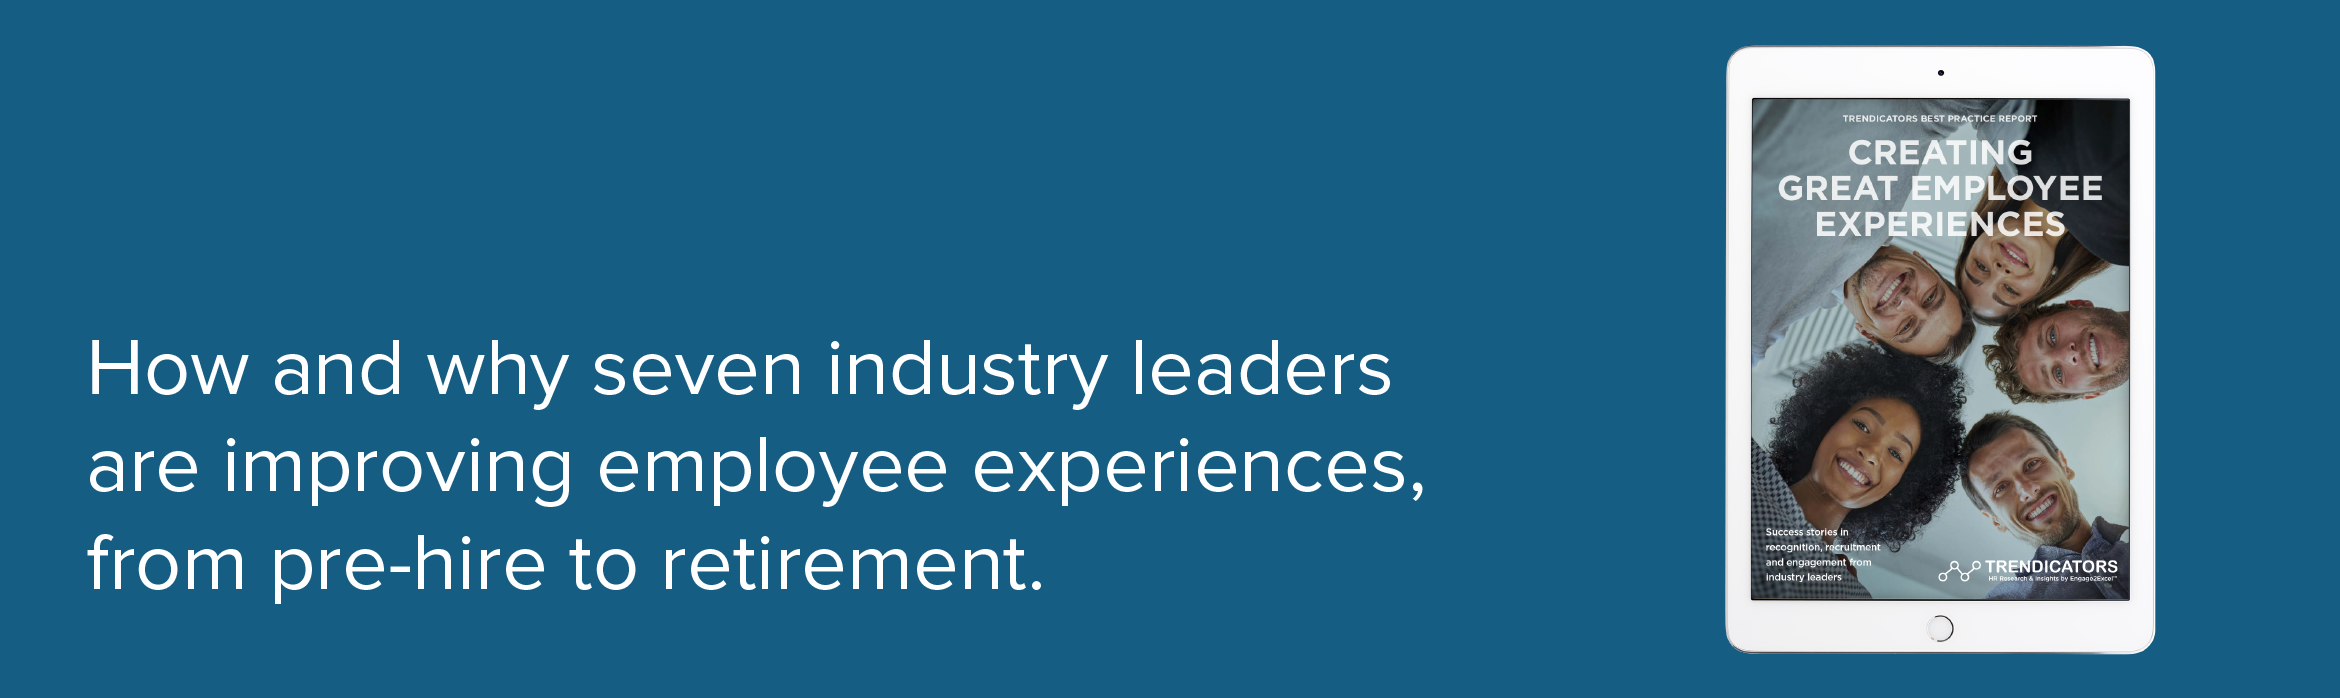 How and why seven industry leaders are improving employee experiences, from pre-hire to retirement.